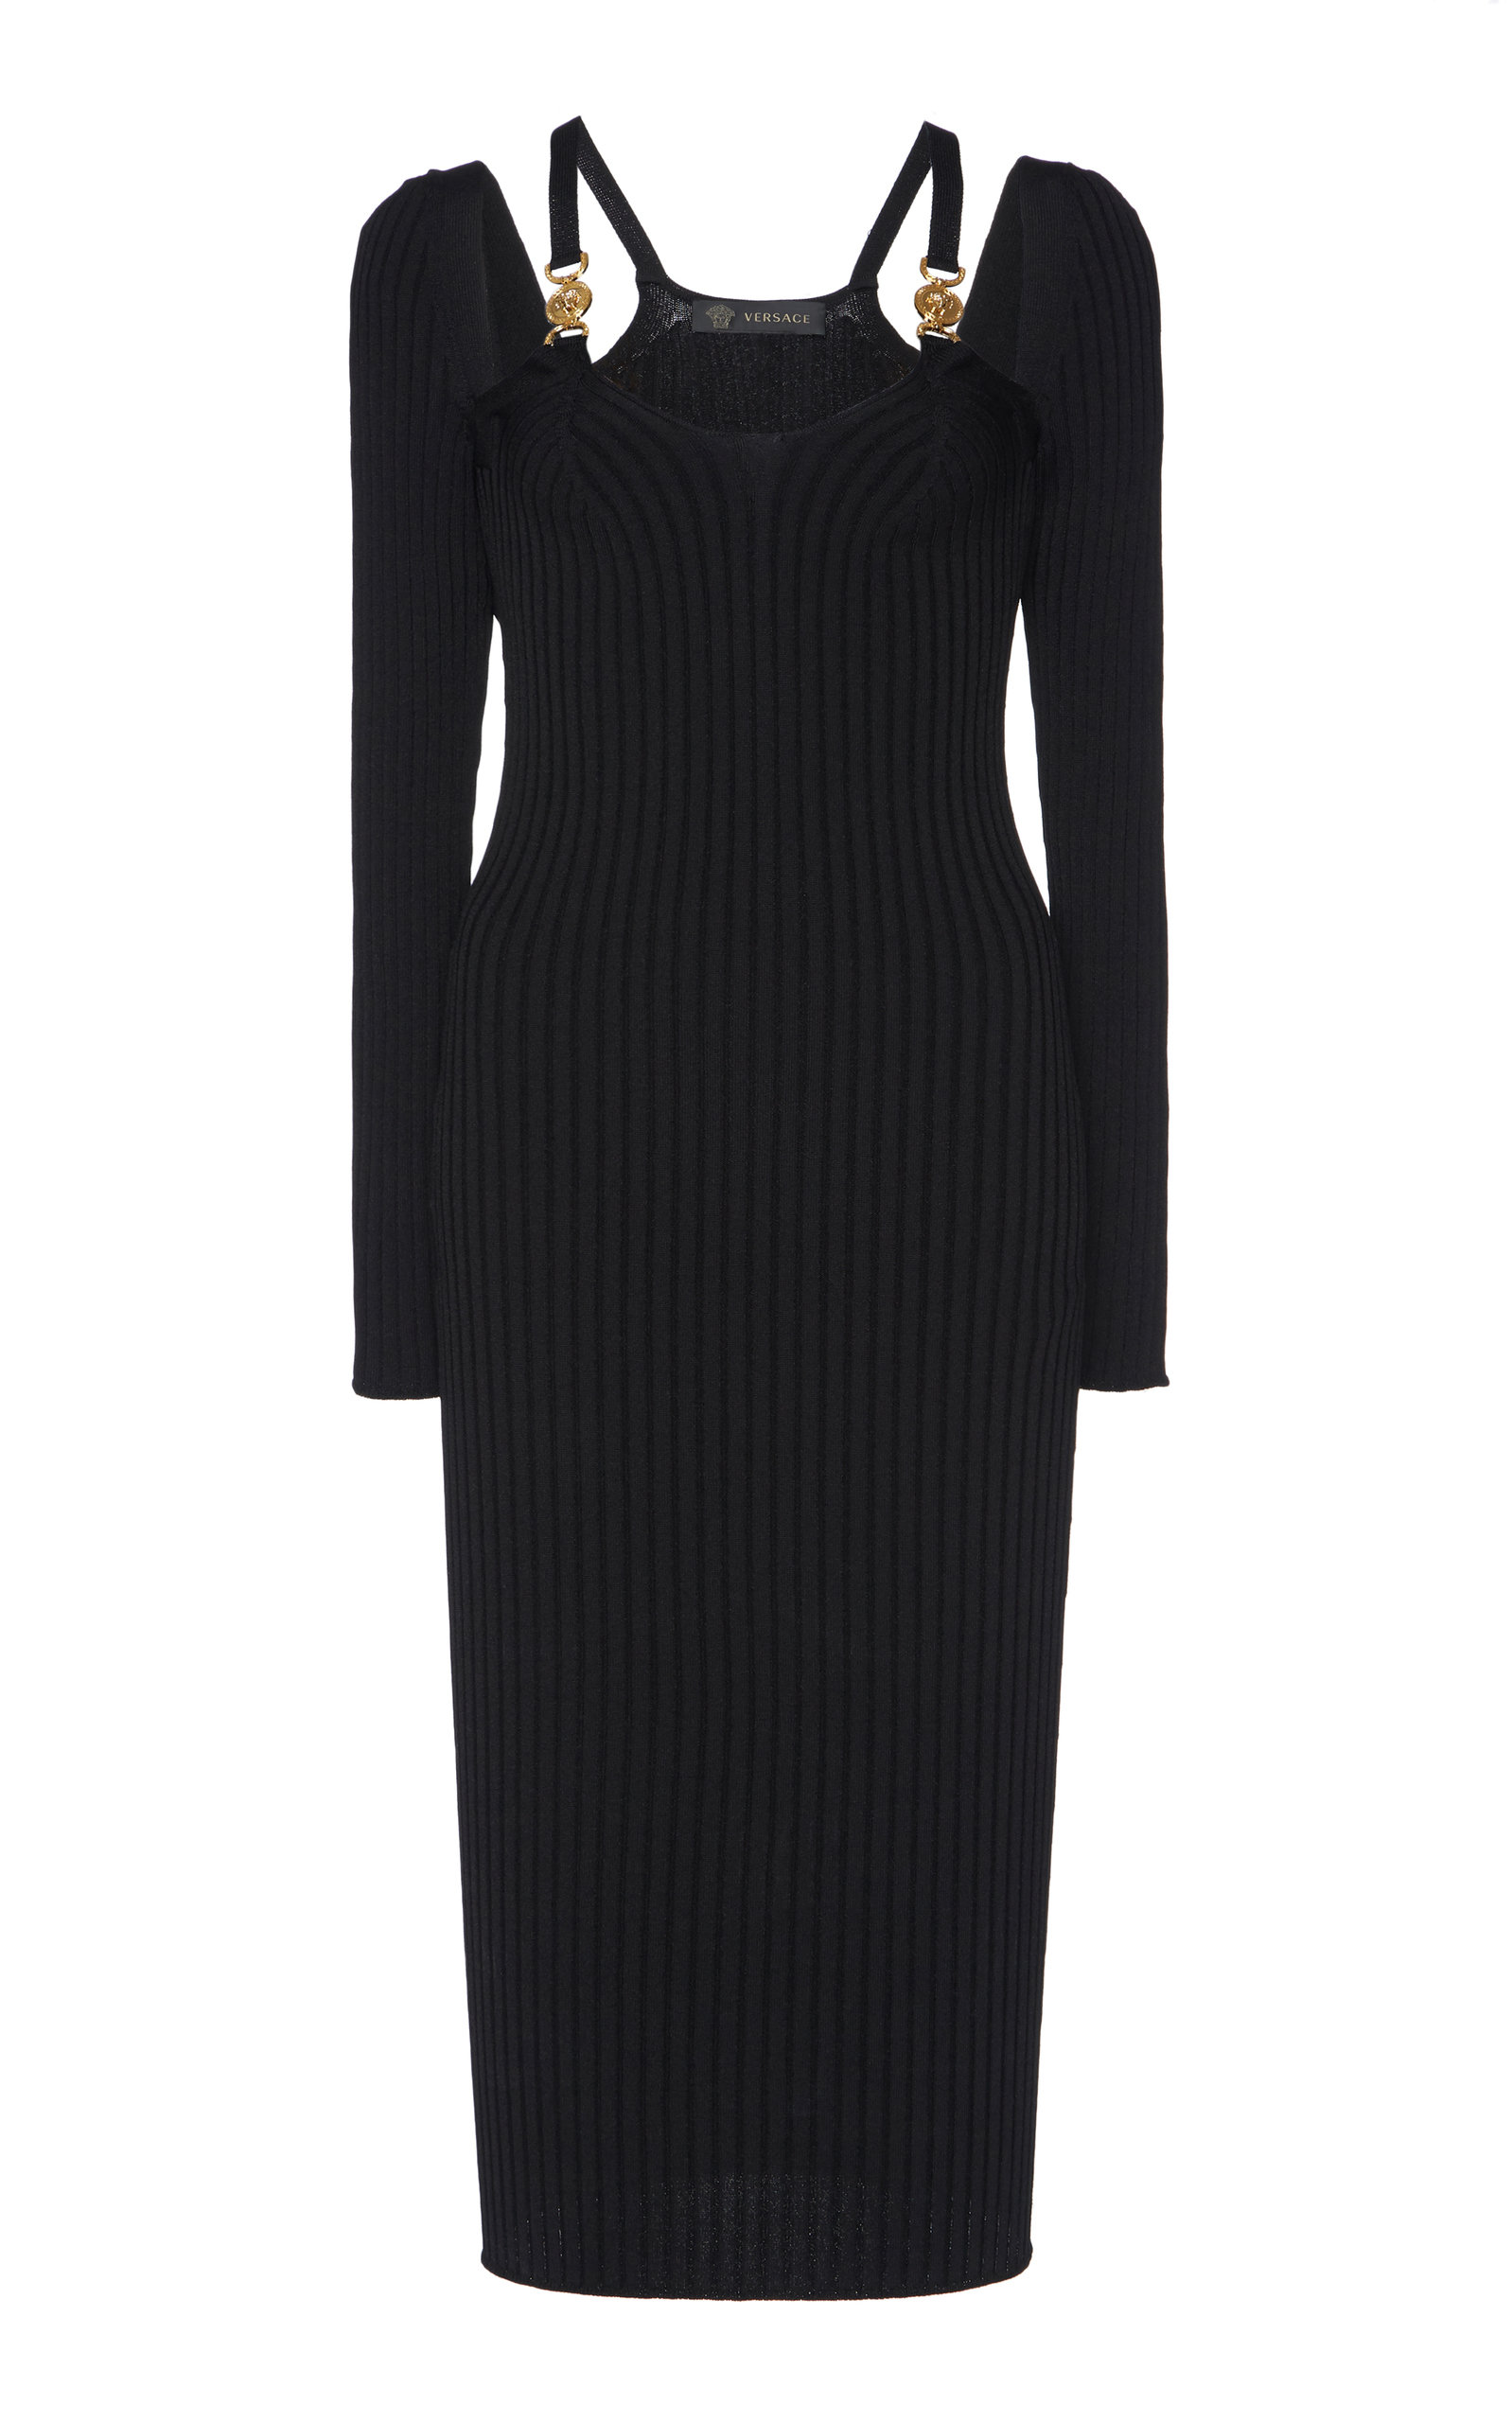 Buy Versace Cutout Ribbed Stretch-Knit Midi Dress online, shop Versace at the best price